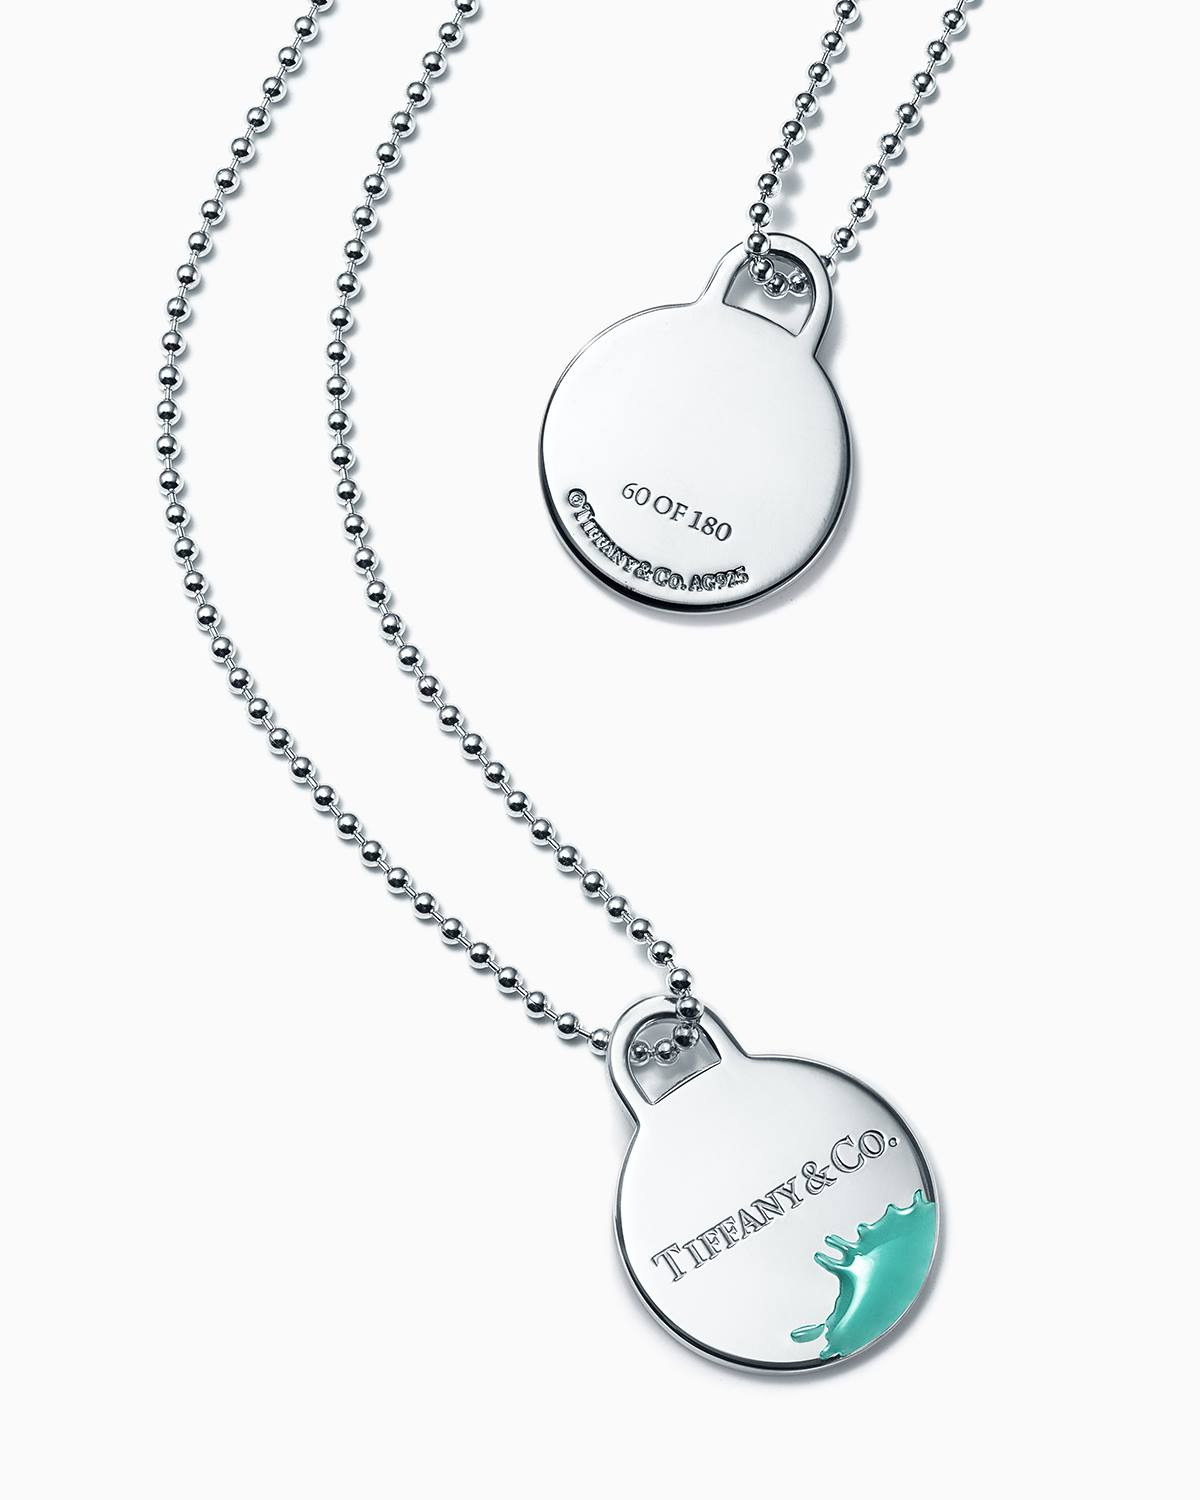 No Other Brand Has Made A Better Name For Itself In Creating Pieces That Are An Enduring Statement Of Love Romance And Eternal Bond Than Tiffany